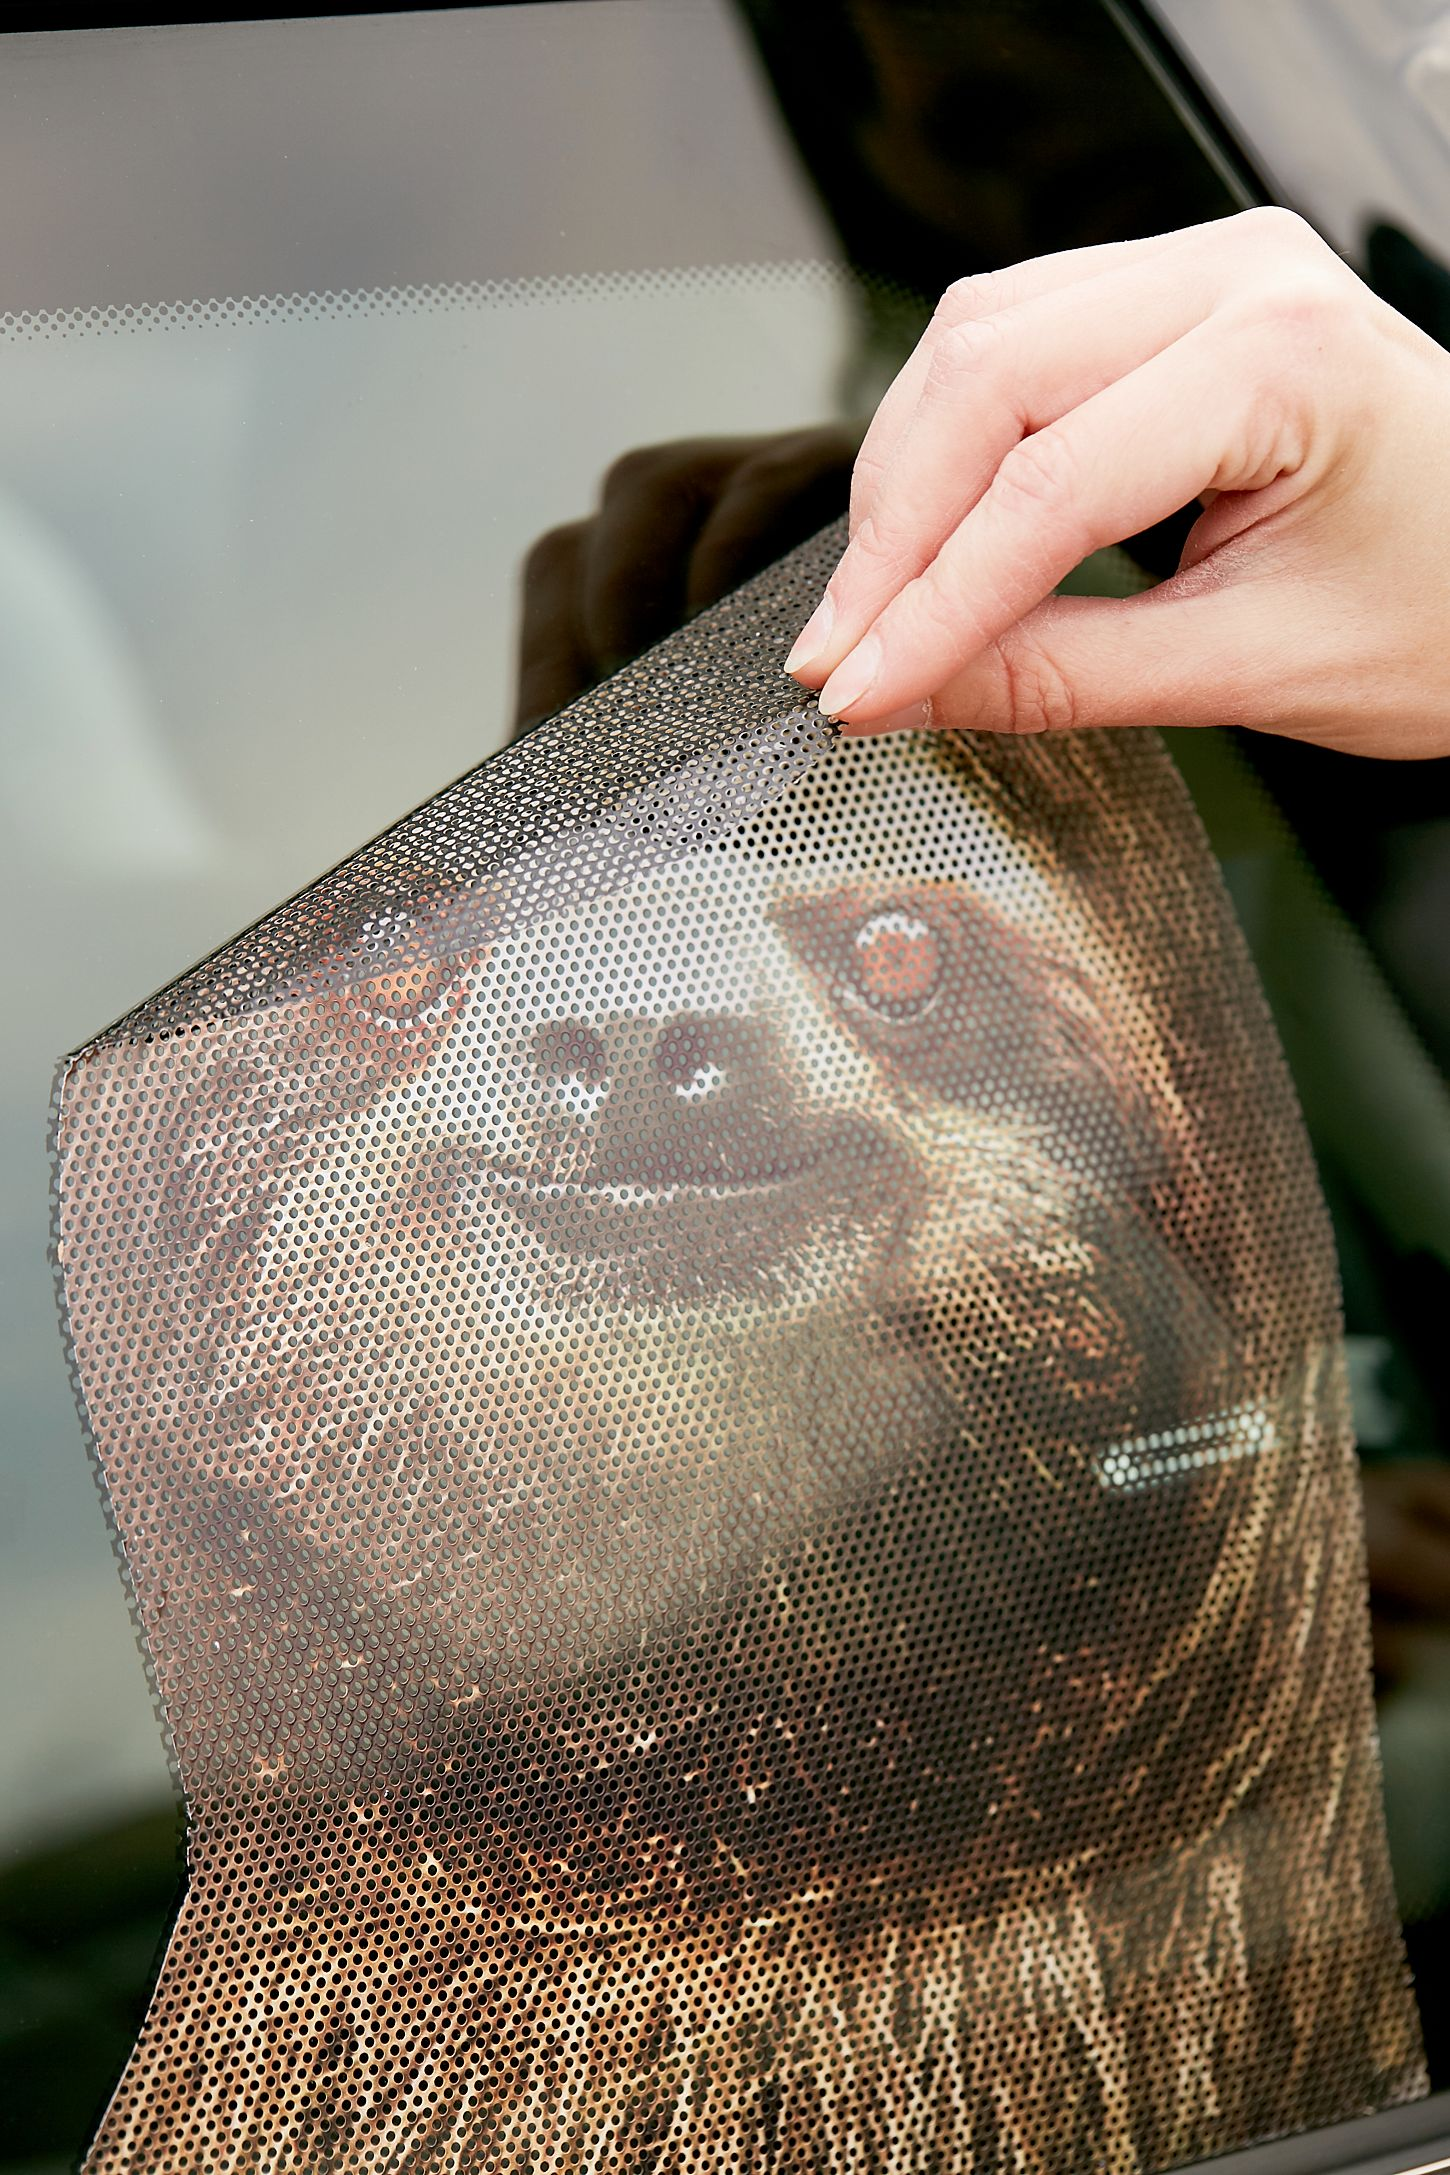 Slide view 2 sloth car decal